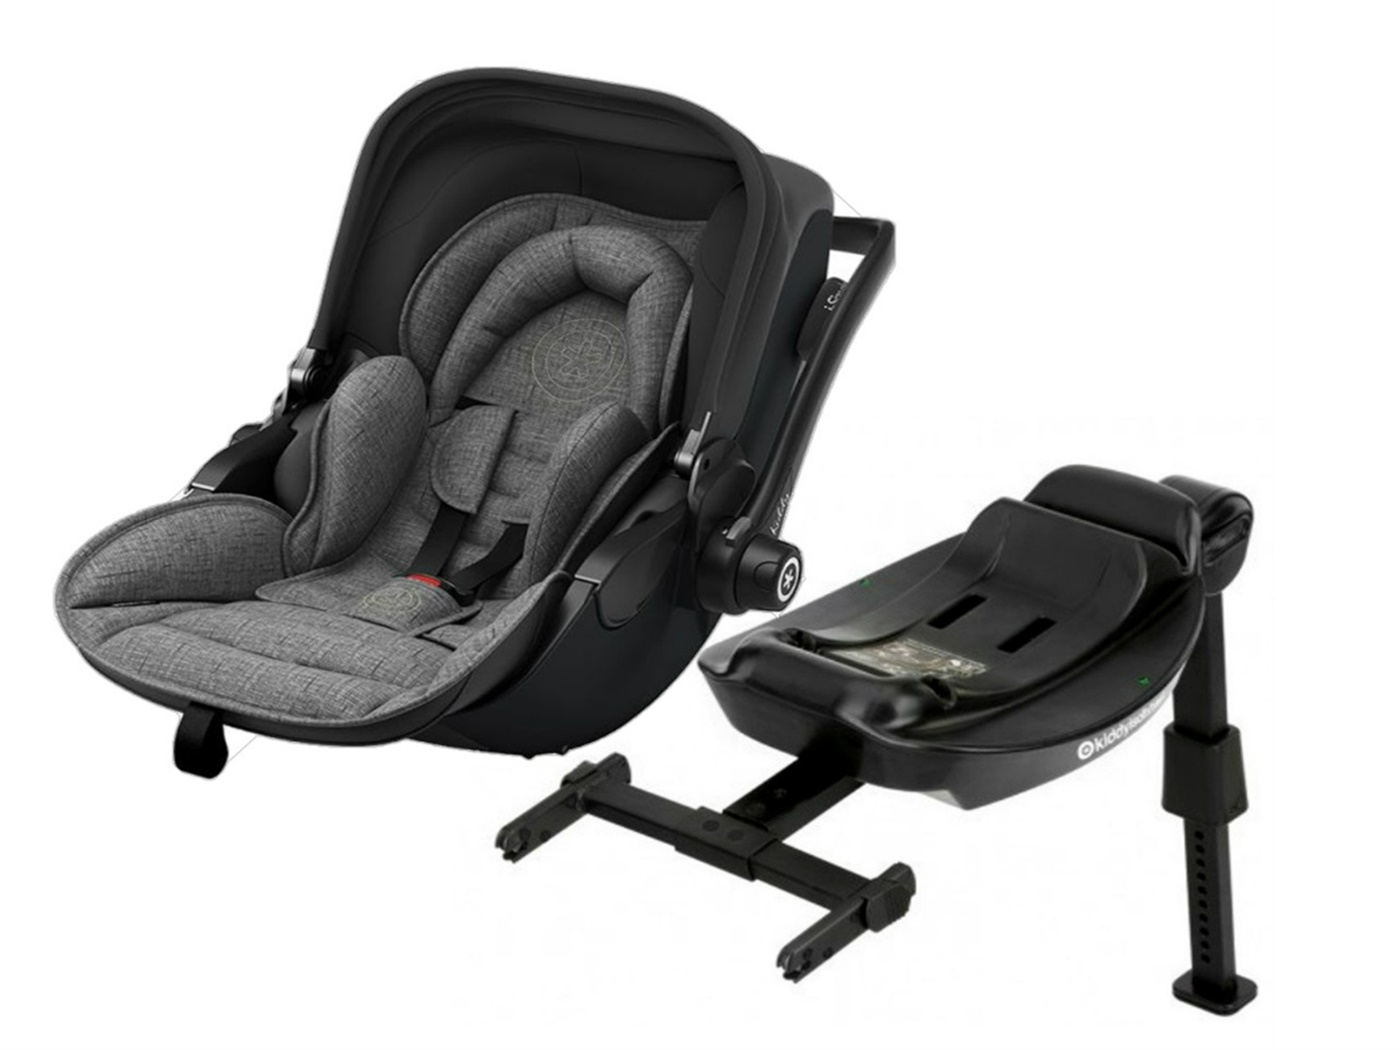 Kiddy   evoluna  i   size   2   car   seat       melange   grey   icy   grey